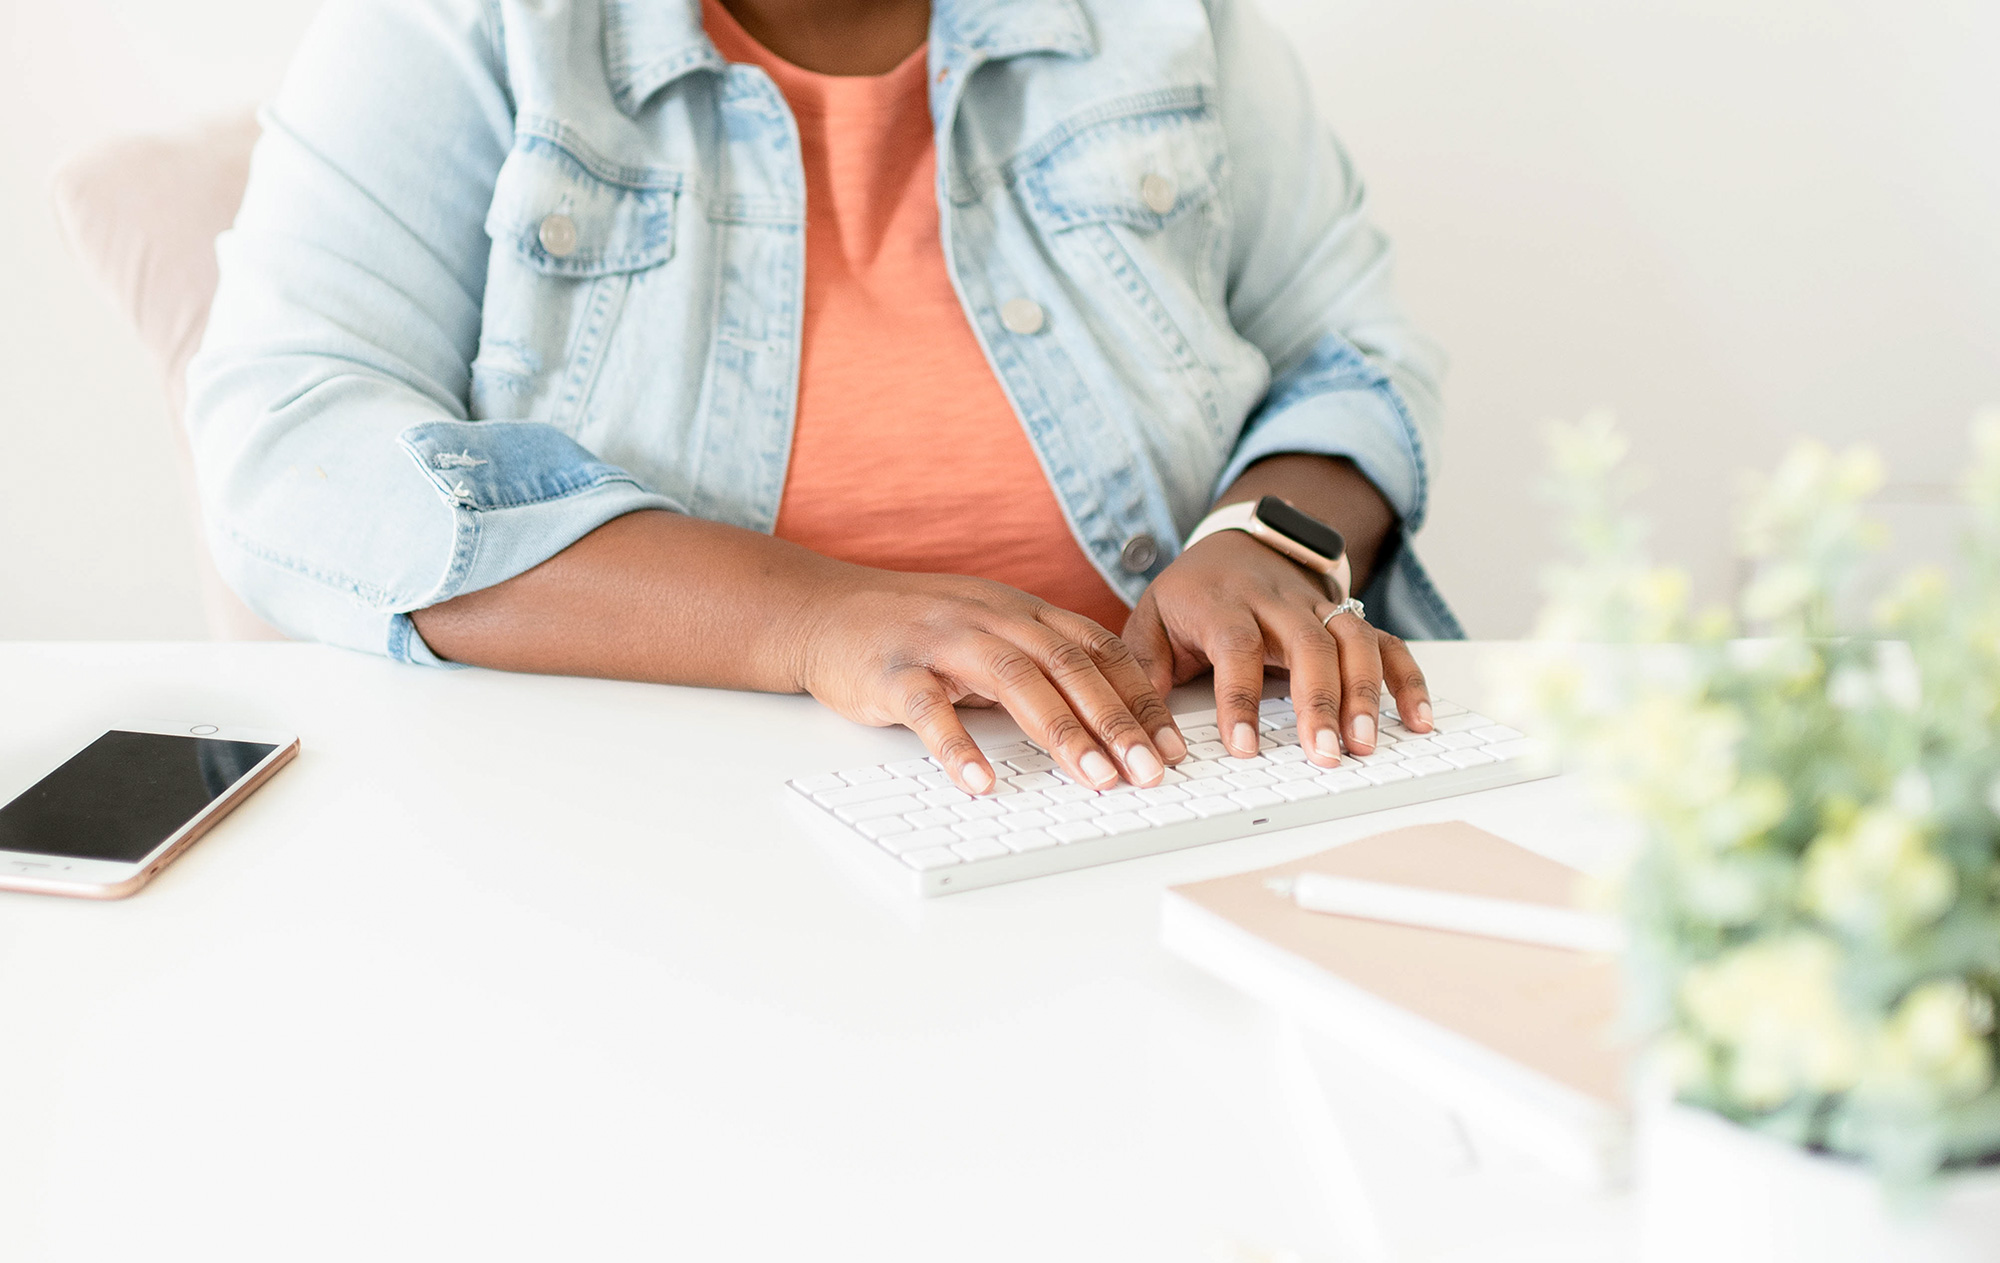 side hustle ideas at home